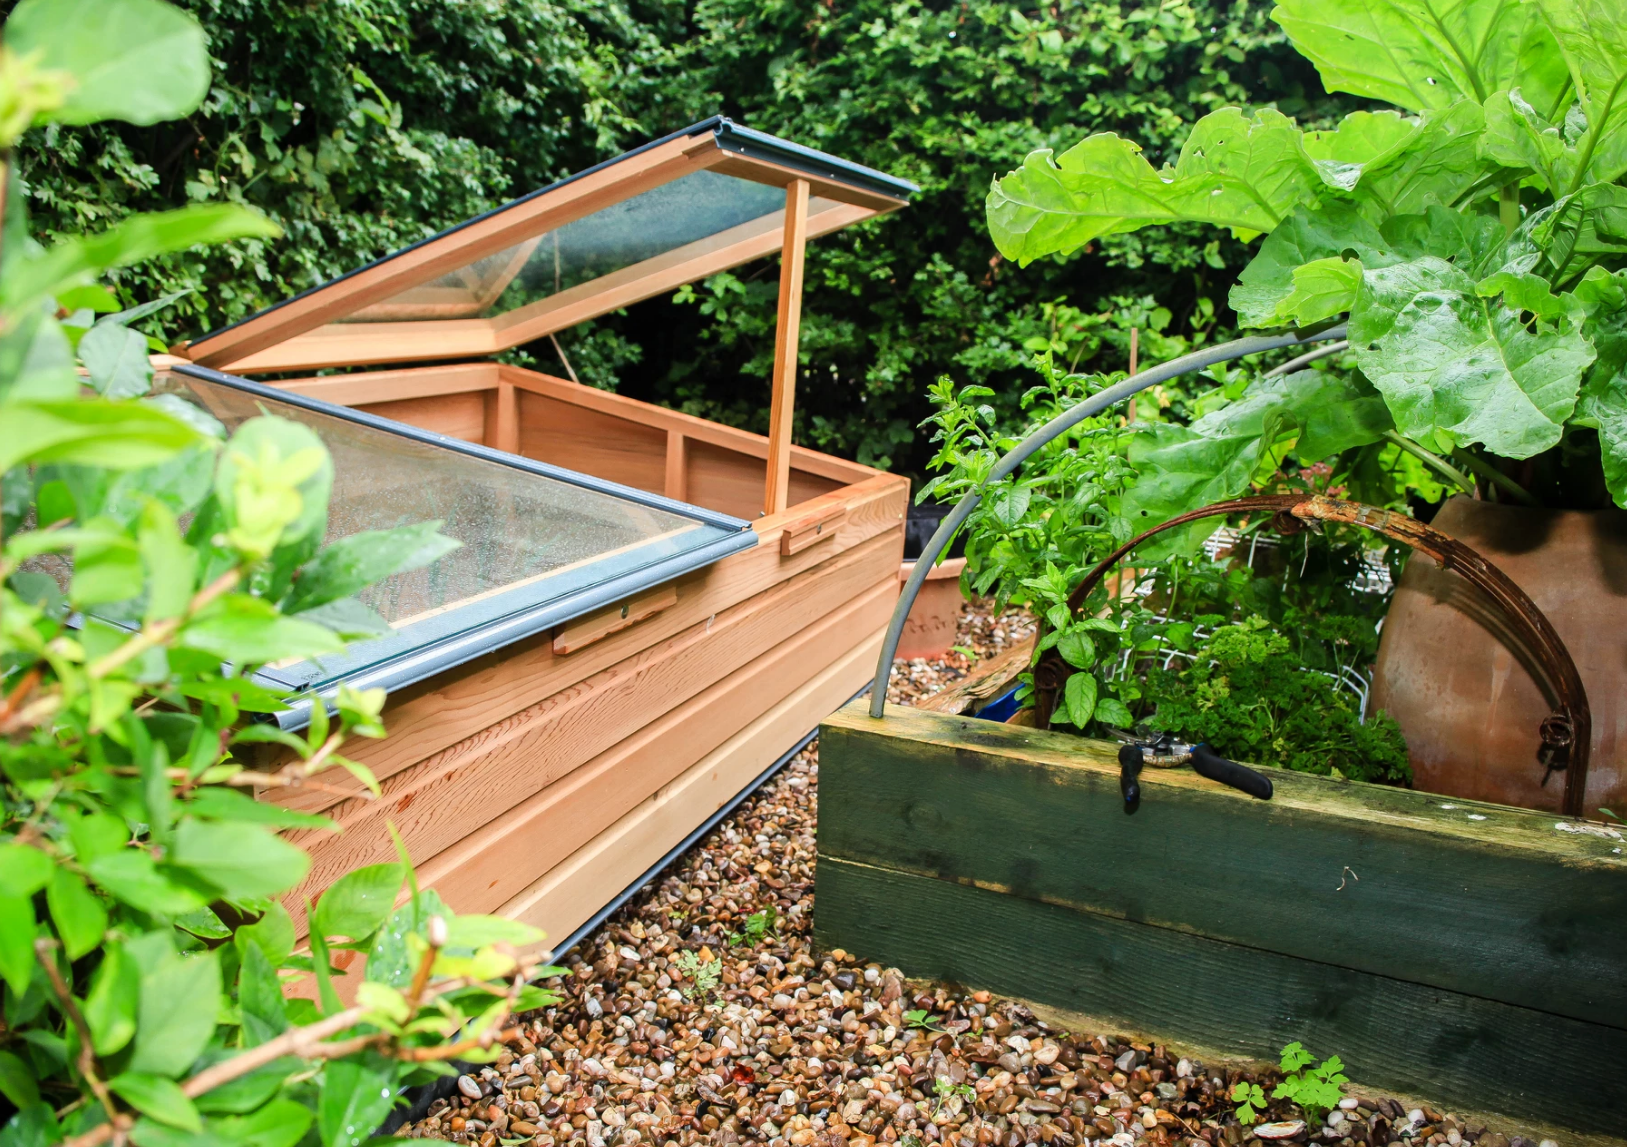 The Best Small Wooden Greenhouses Available Today